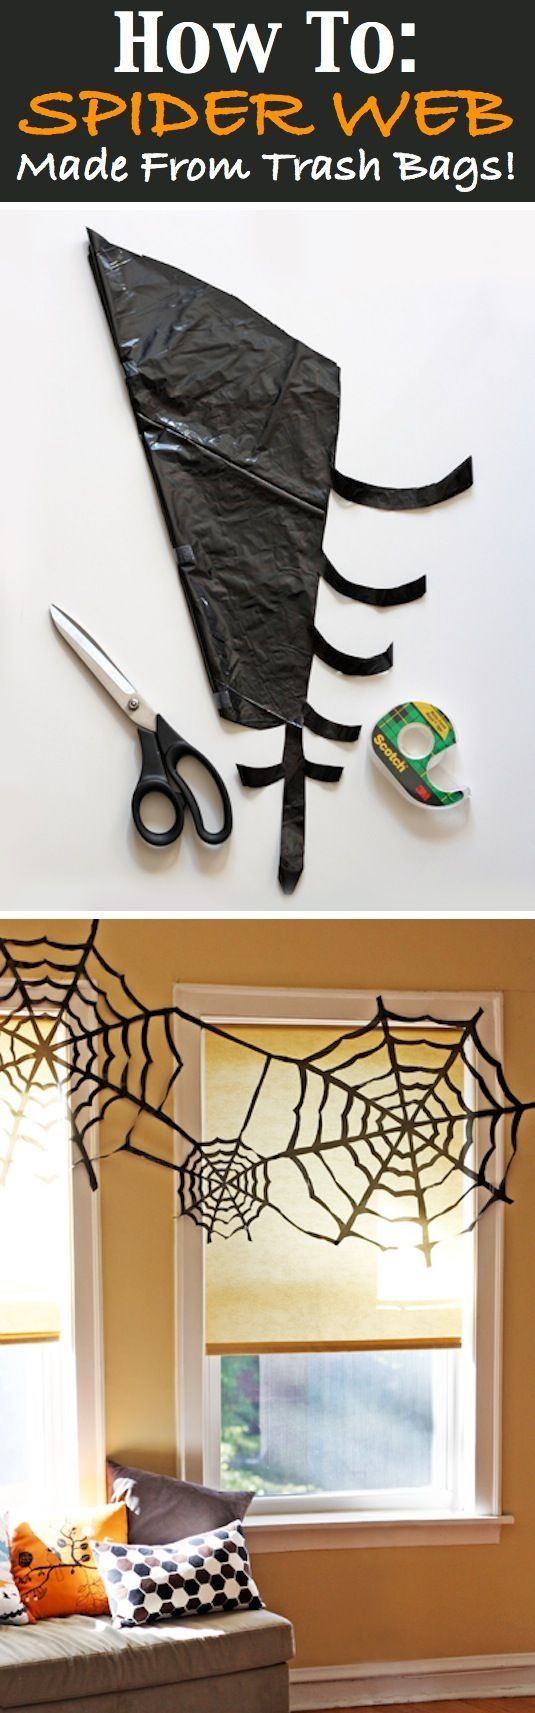 16 easy but awesome homemade halloween decorations by echkbet - Cheap Easy Halloween Decorating Ideas